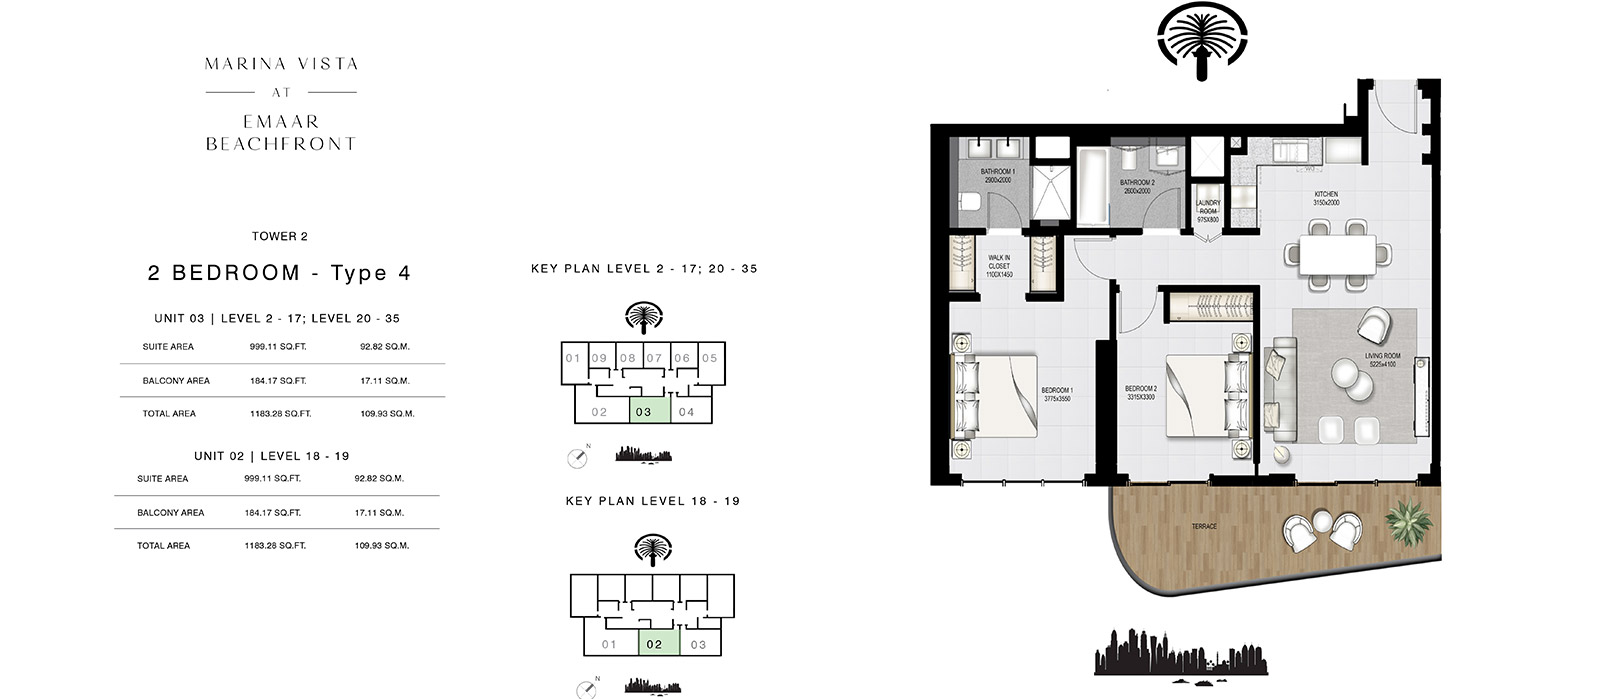 2 Bedroom Tower 2, Type 4, Size 1183.28 sq.ft.